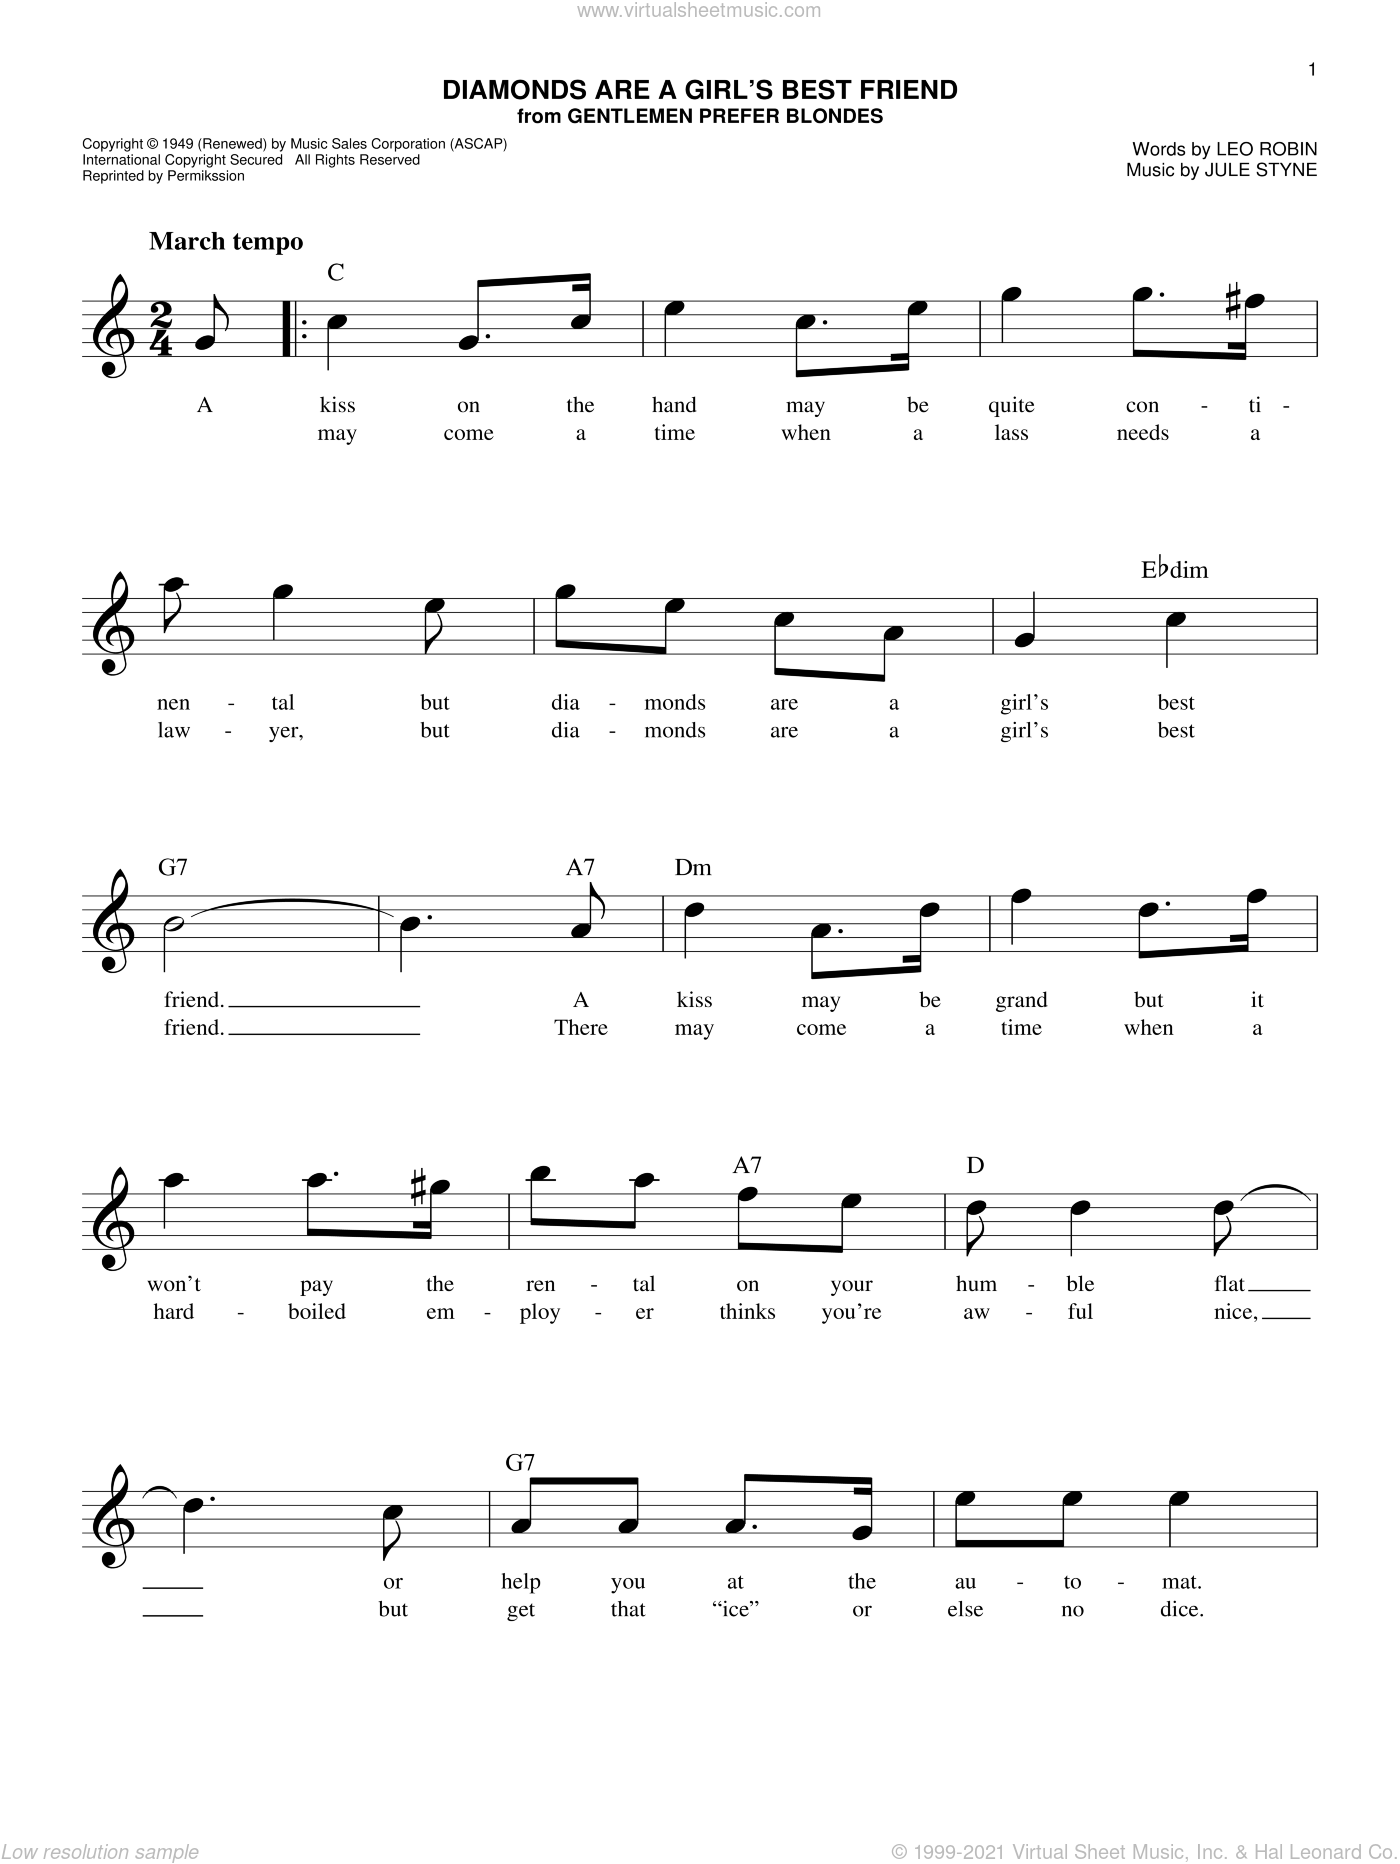 Diamonds Are A Girl's Best Friend sheet music for voice and other instruments (fake book) by Jule Styne and Leo Robin, intermediate skill level